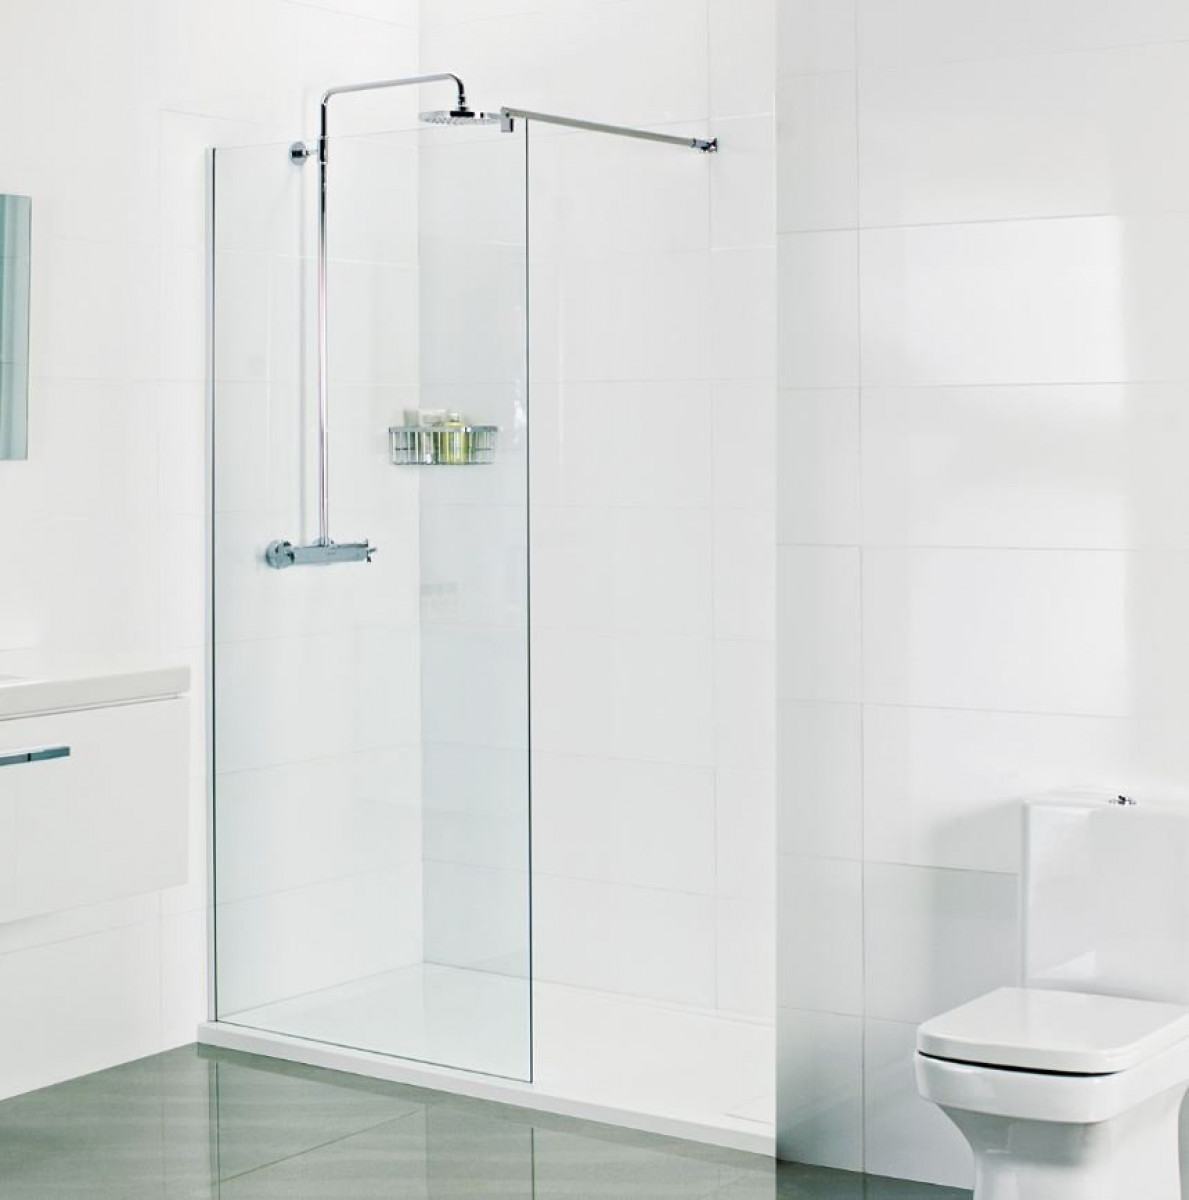 room collections everythingbathroom bath koncept shower screen enclosures co kartell uk products wet